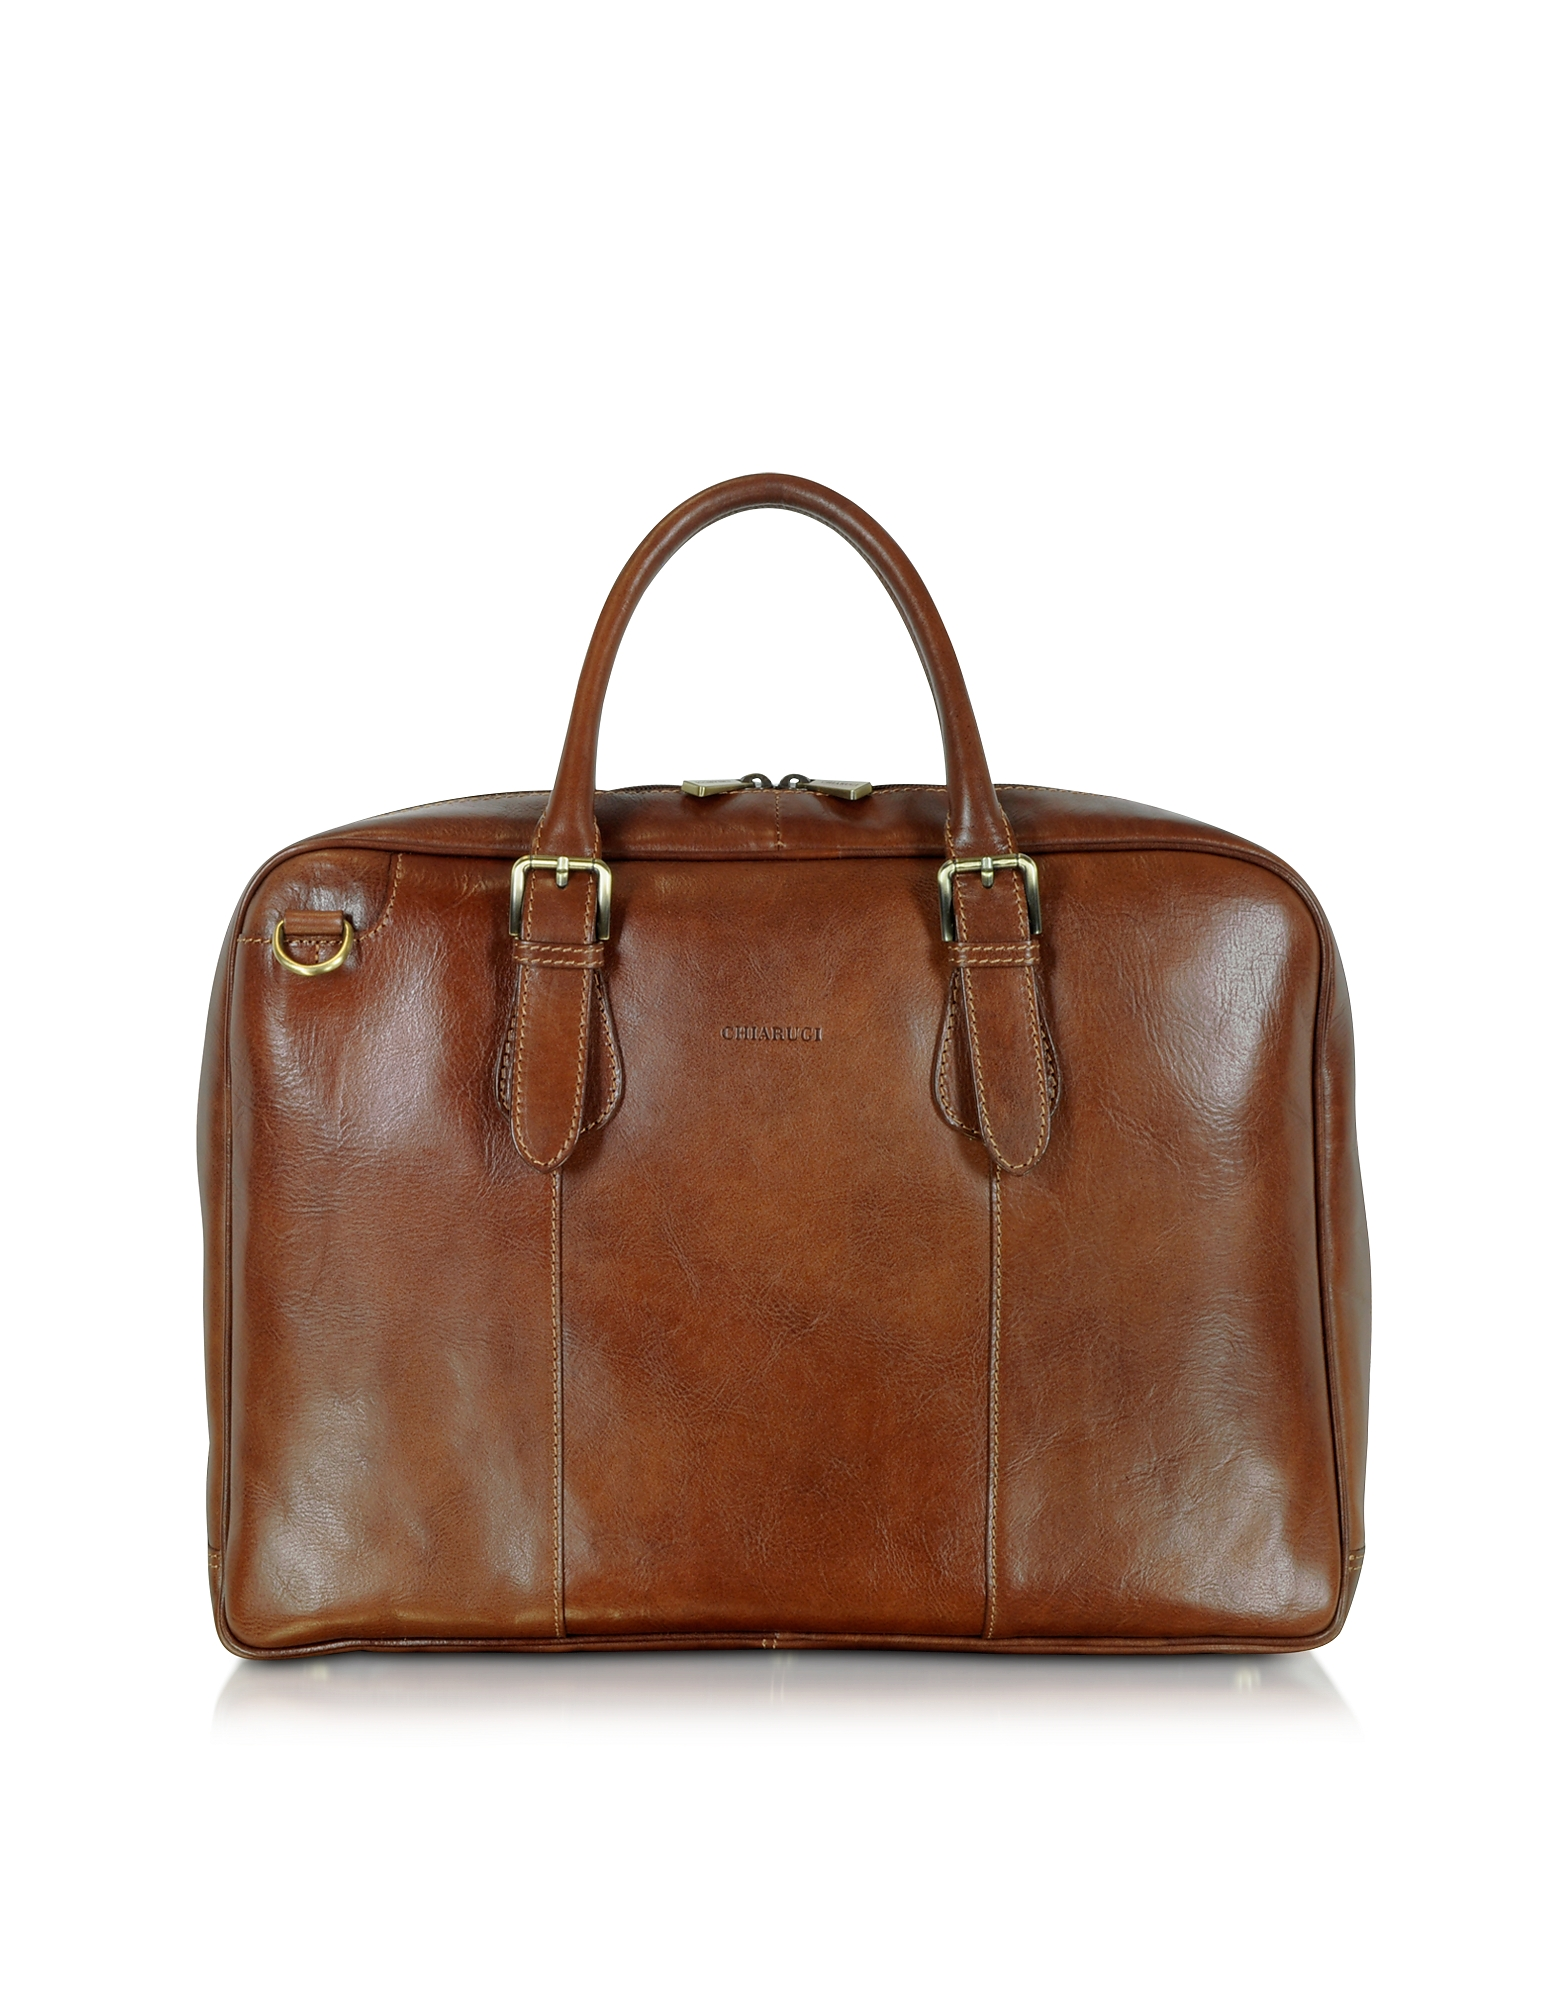 Chiarugi Briefcases, Brown Double Handle Leather Briefcase